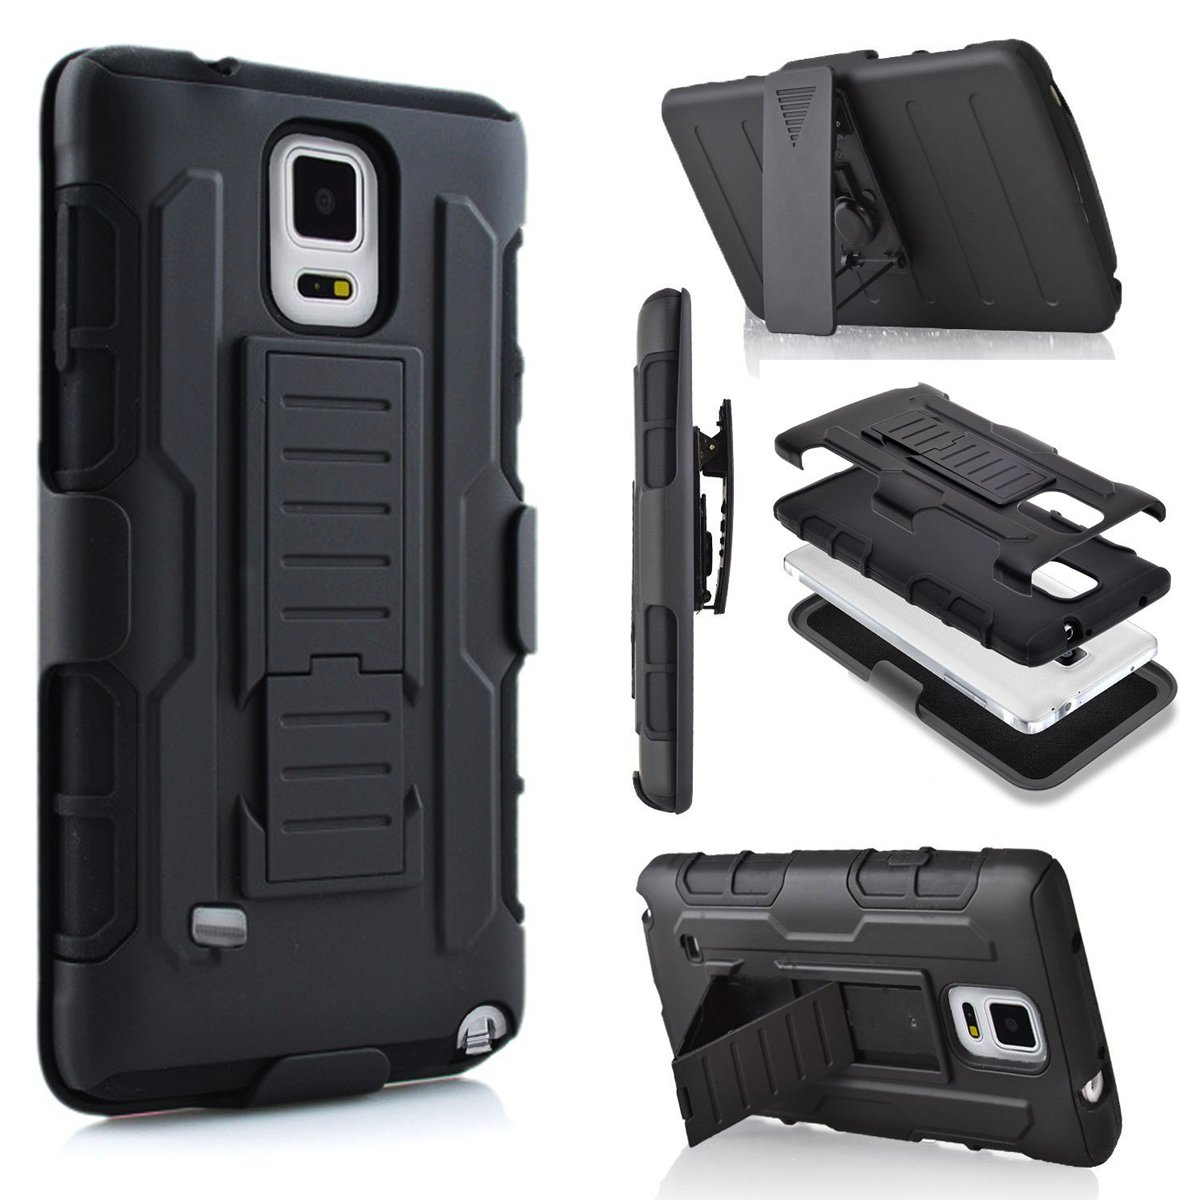 Galaxy Note 4 Case, Jwest Note 4 Holster Case Full-Body Rugged Shock Proof Defender Heavy Duty Armour Tough Swivel Belt Clip Stand Case Cover for Samsung Galaxy Note 4(Black/Black) 4326506588